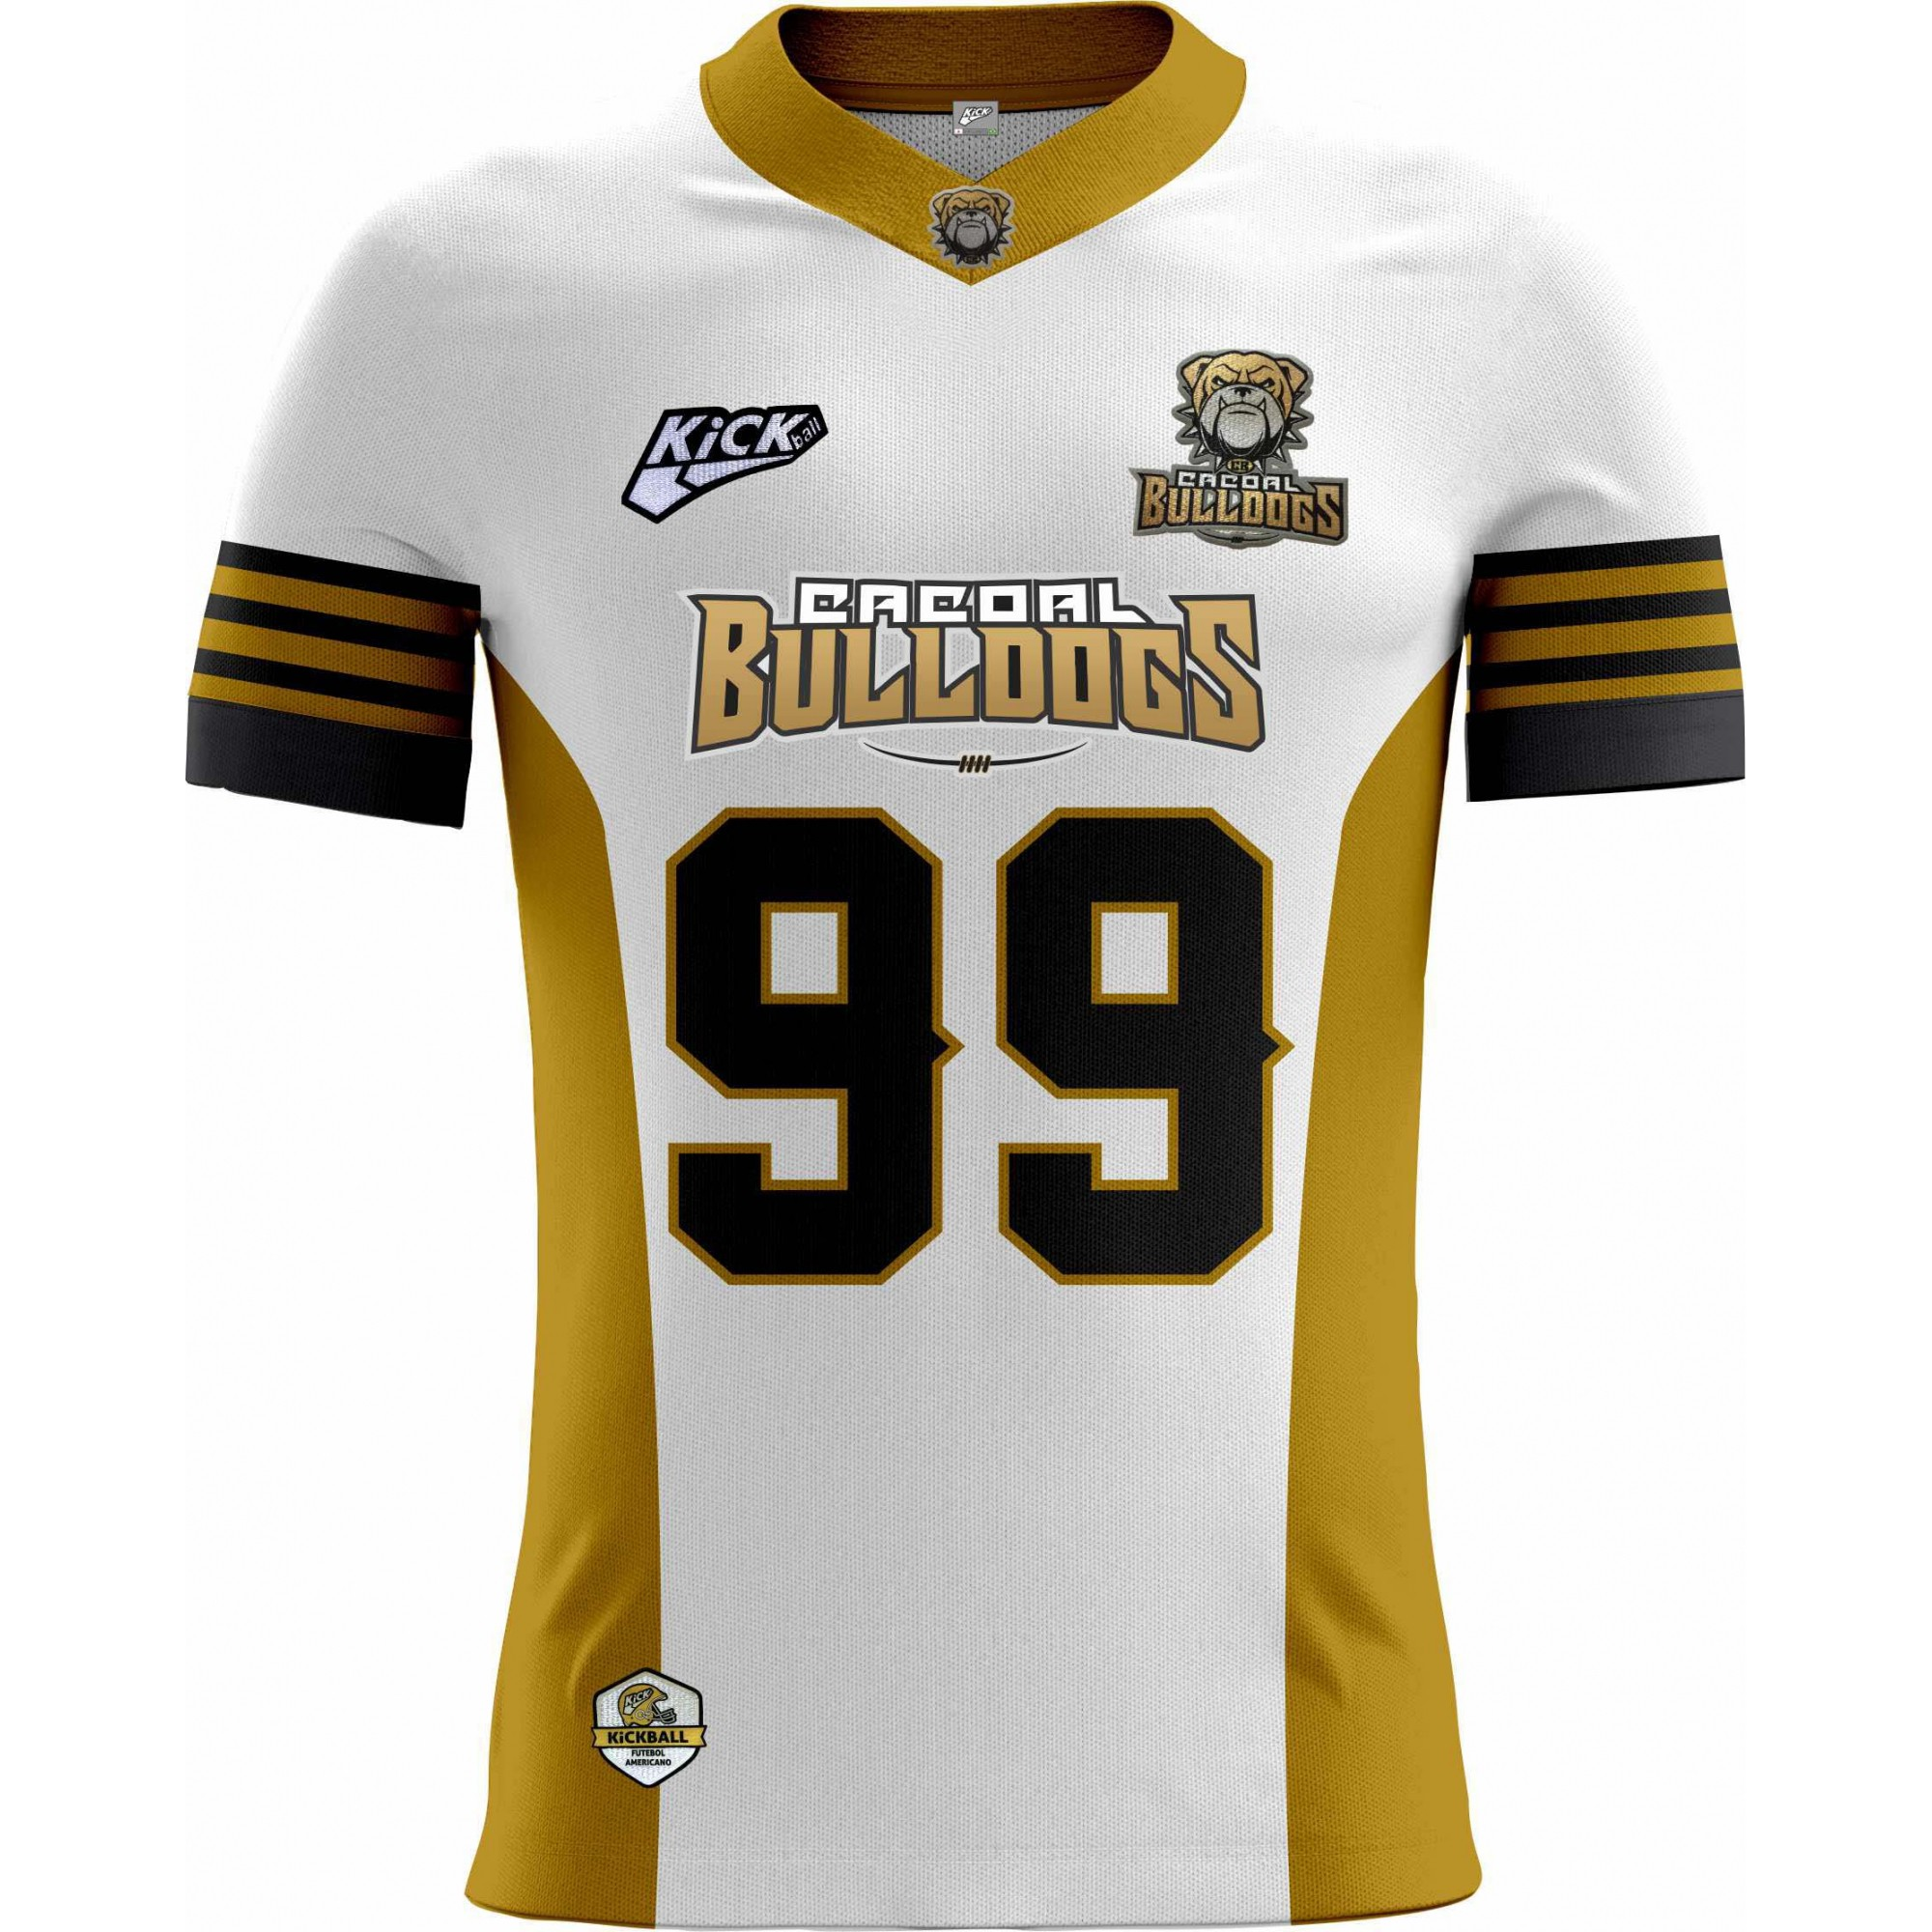 Camisa Of. Cacoal Bulldogs Tryout Masc. Mod1